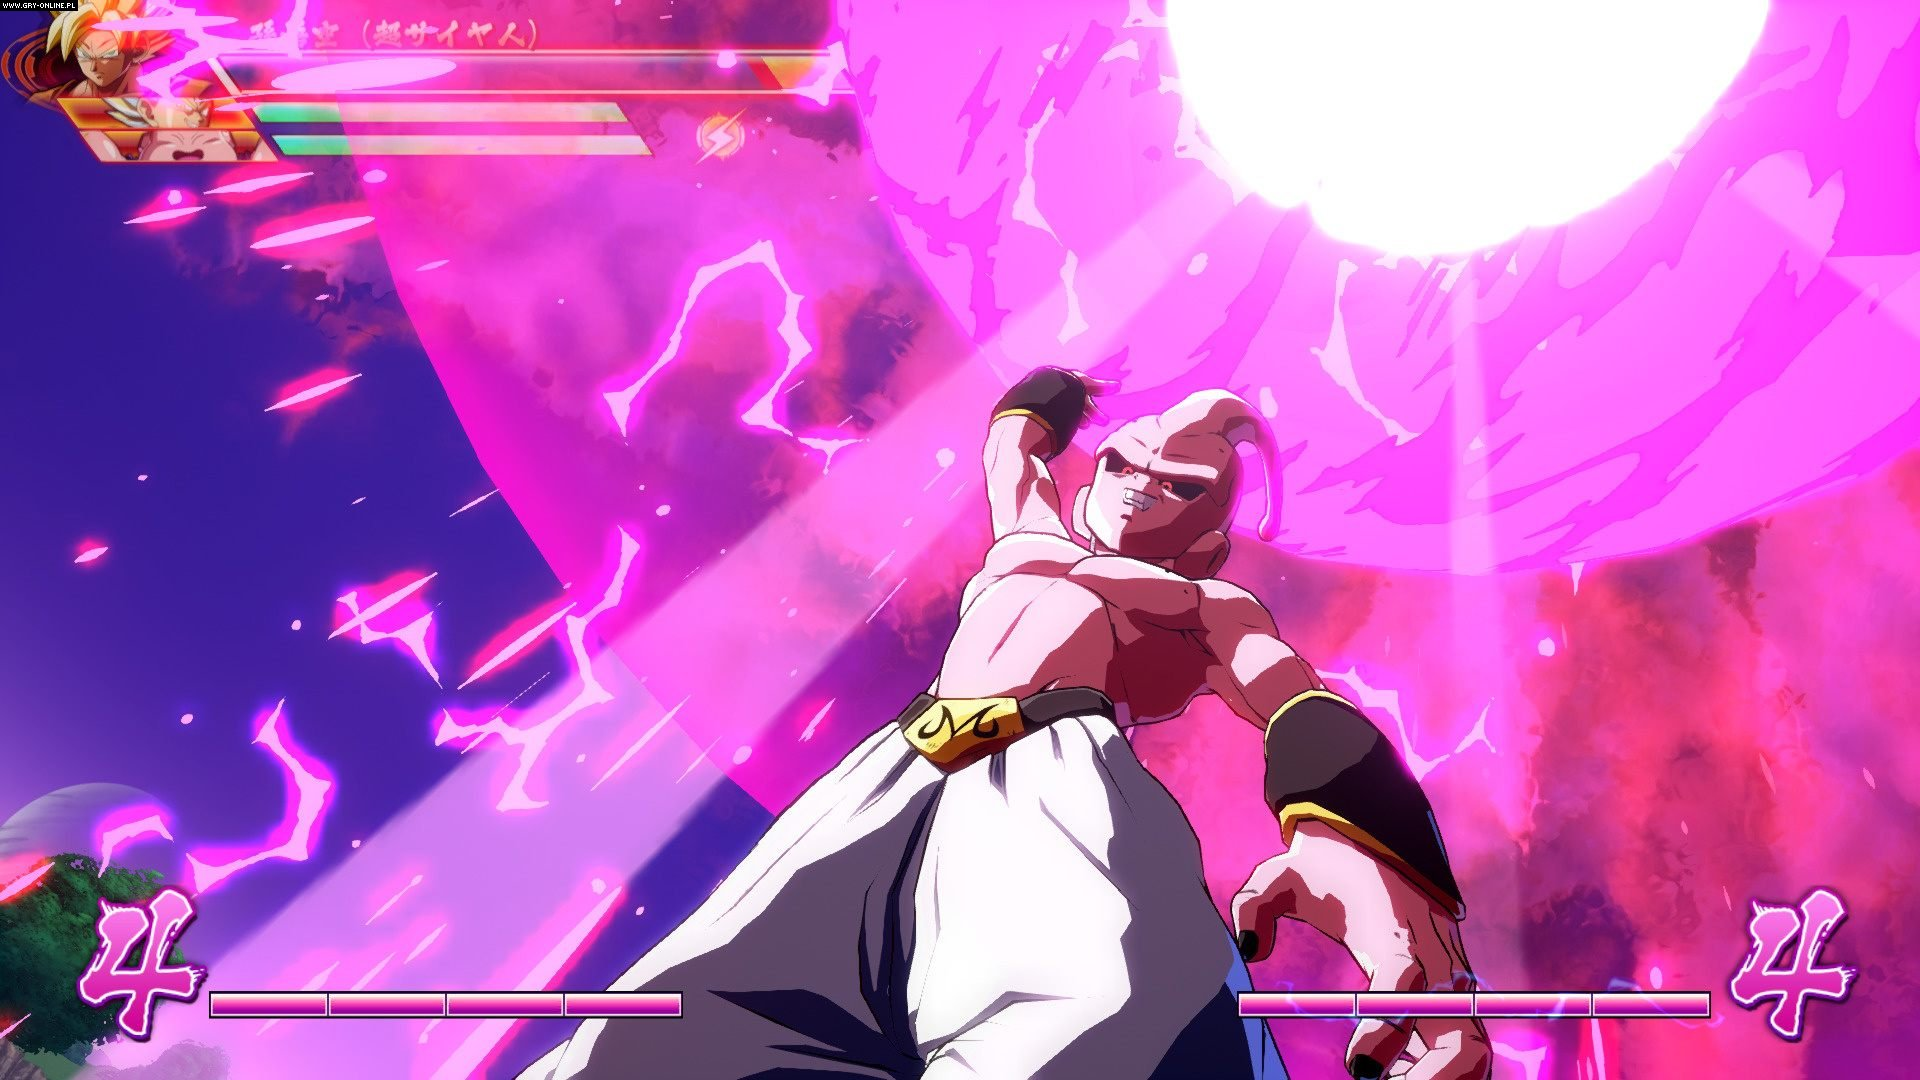 Dragon Ball FighterZ PC, PS4, XONE, Switch Gry Screen 135/230, Arc System Works, Bandai Namco Entertainment